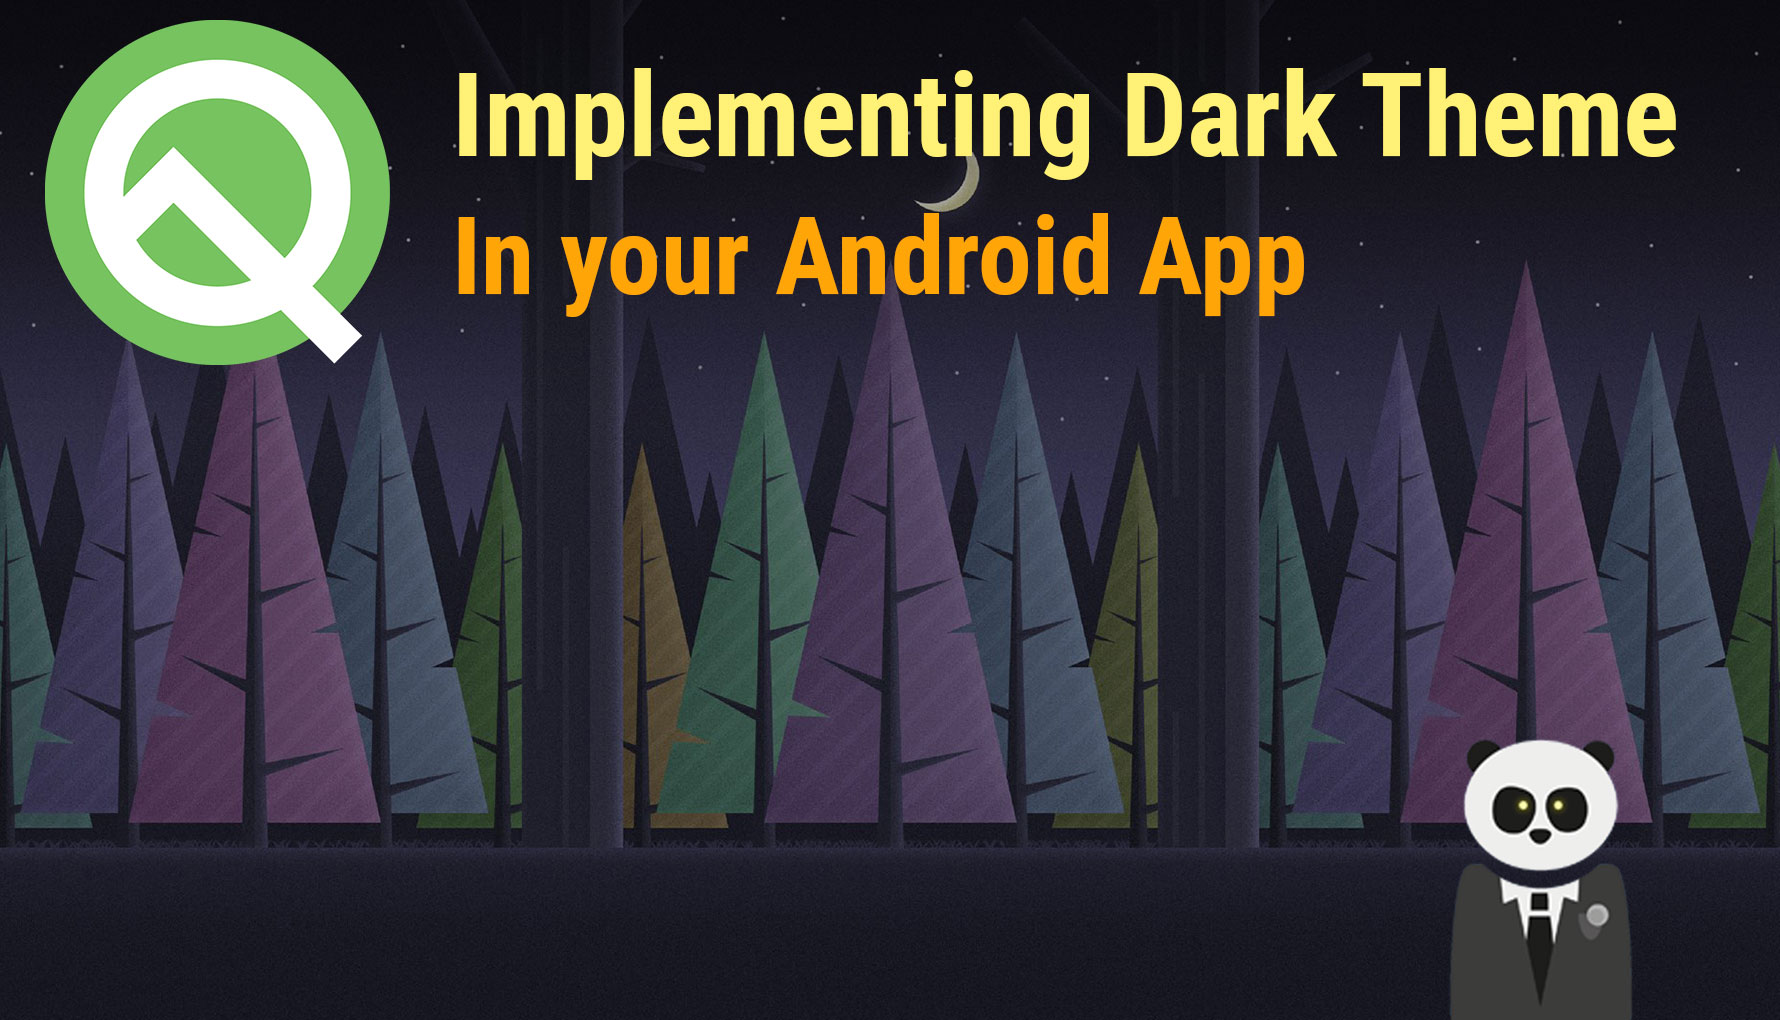 Implementing Dark Theme in your Android App (Android Q)